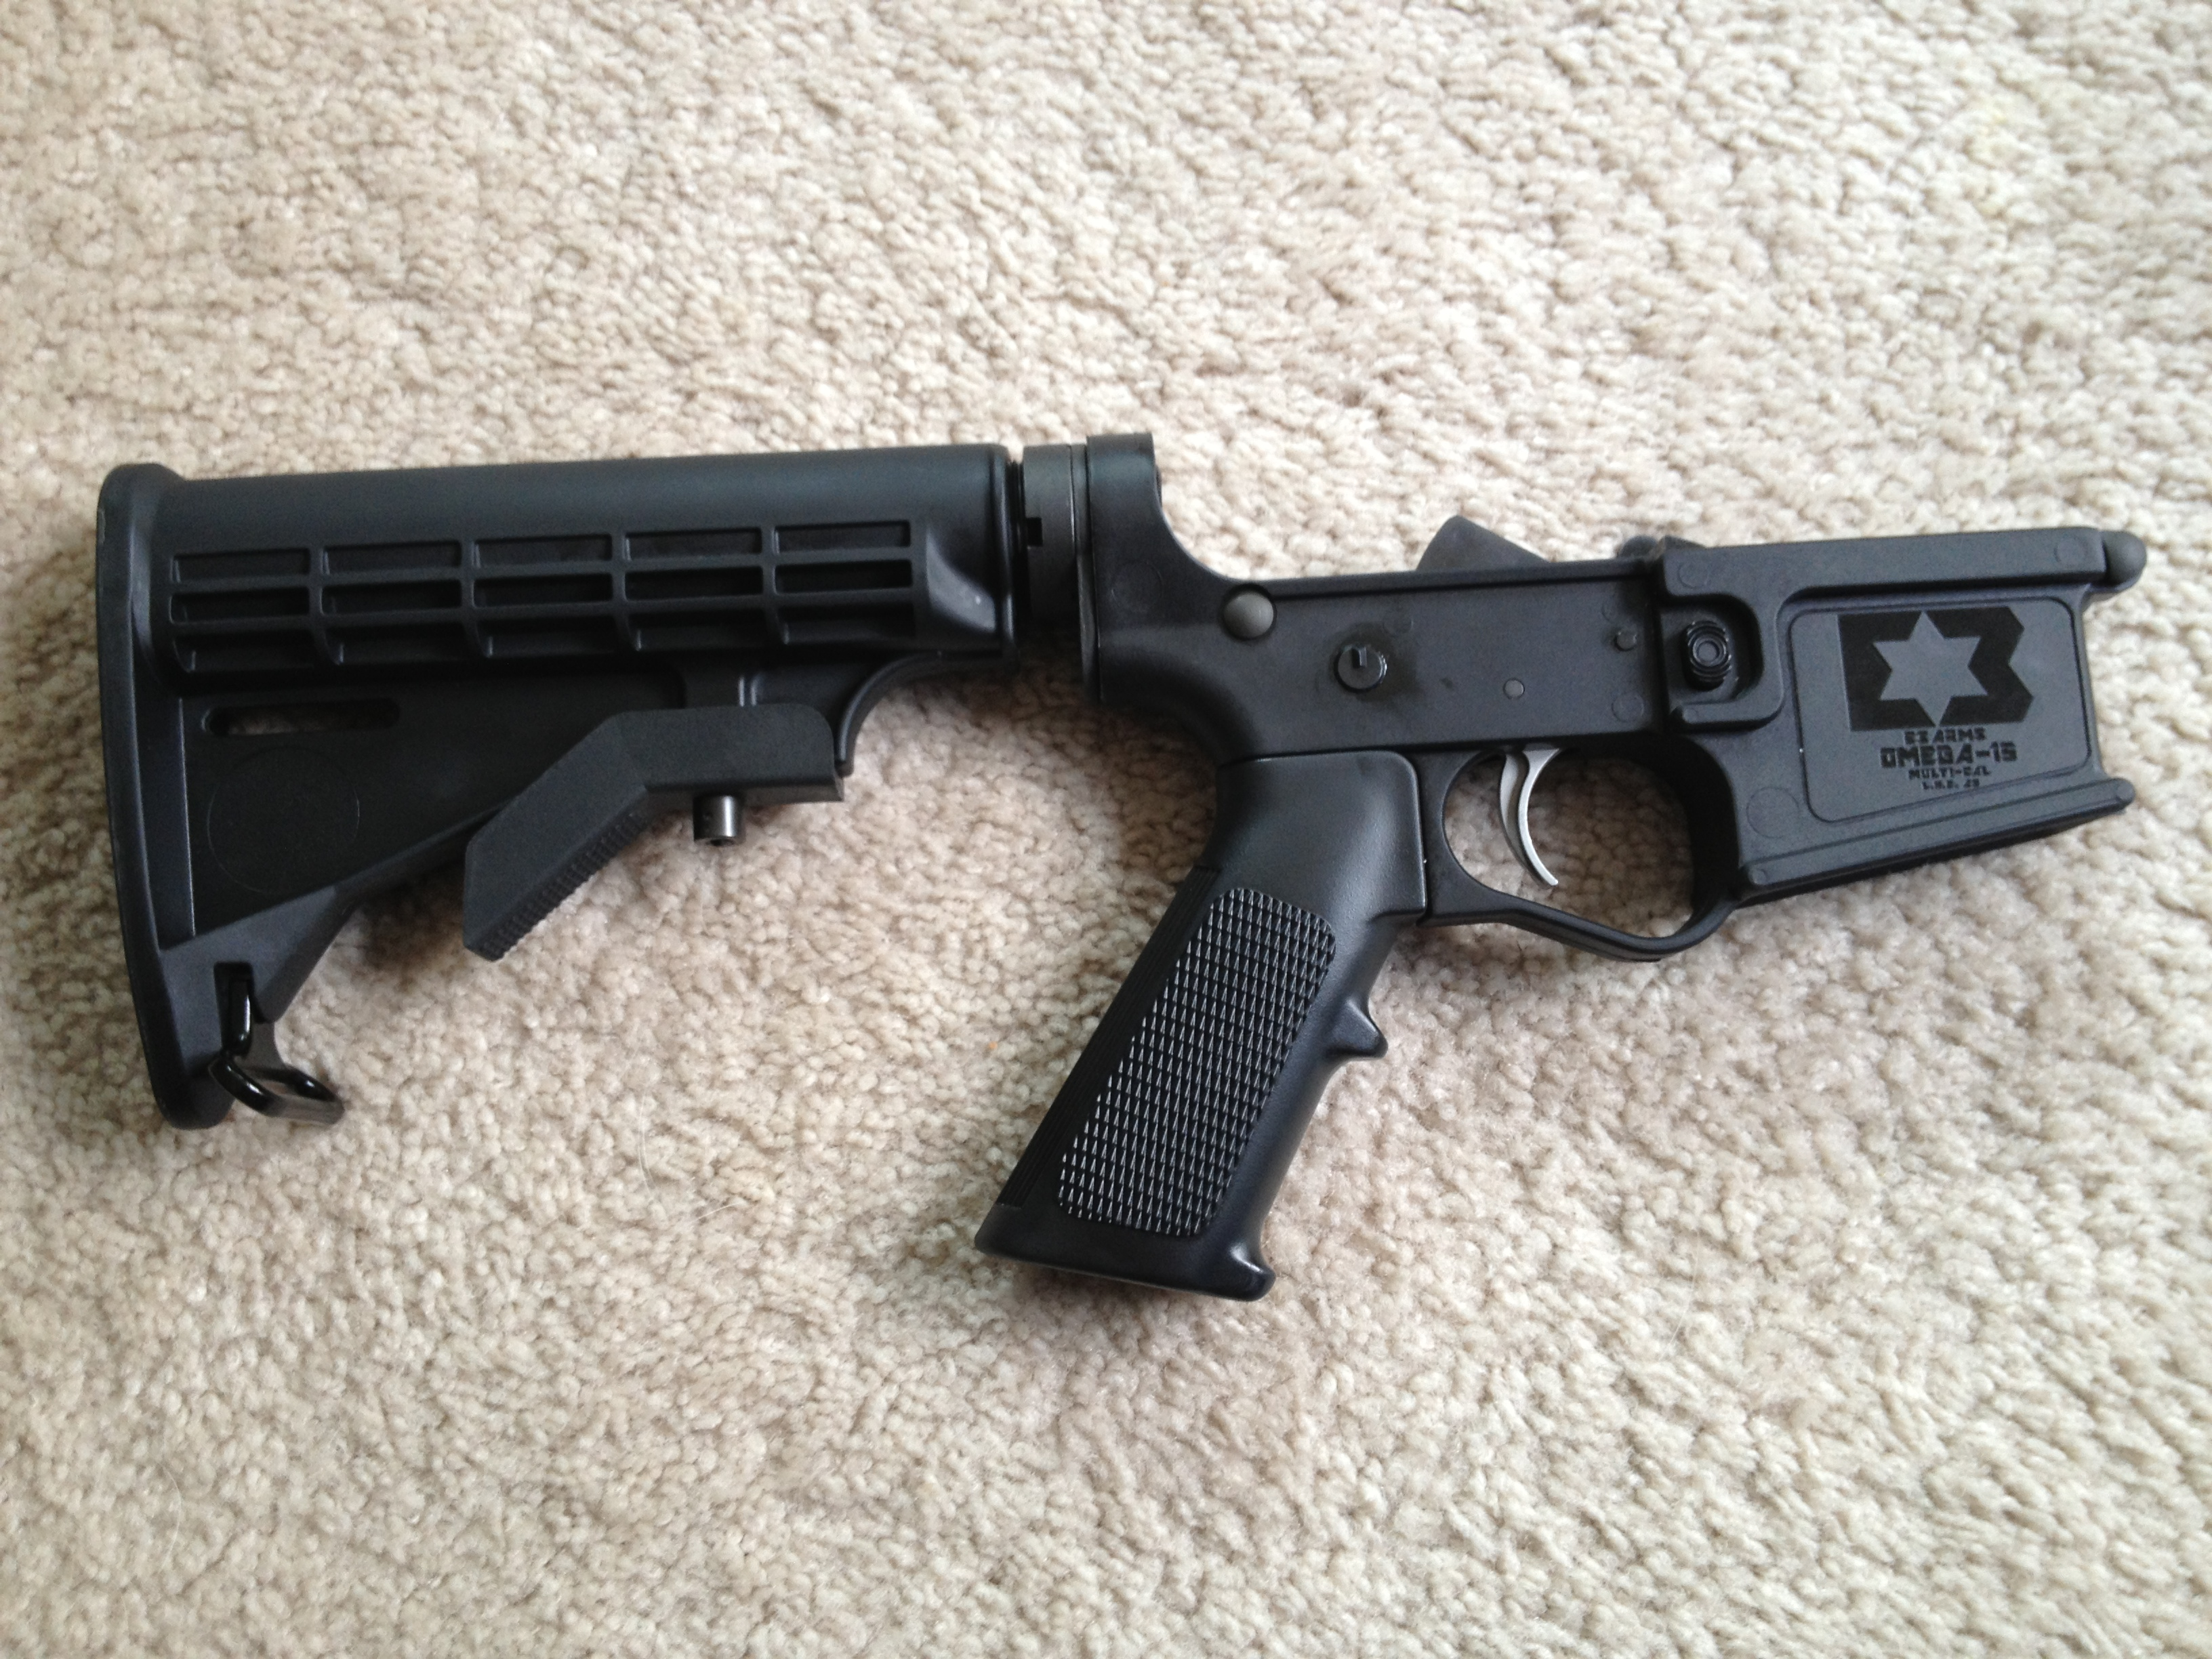 Gunsmith First Impressions of the E3 Arms Omega-15 Multi Cal Lower